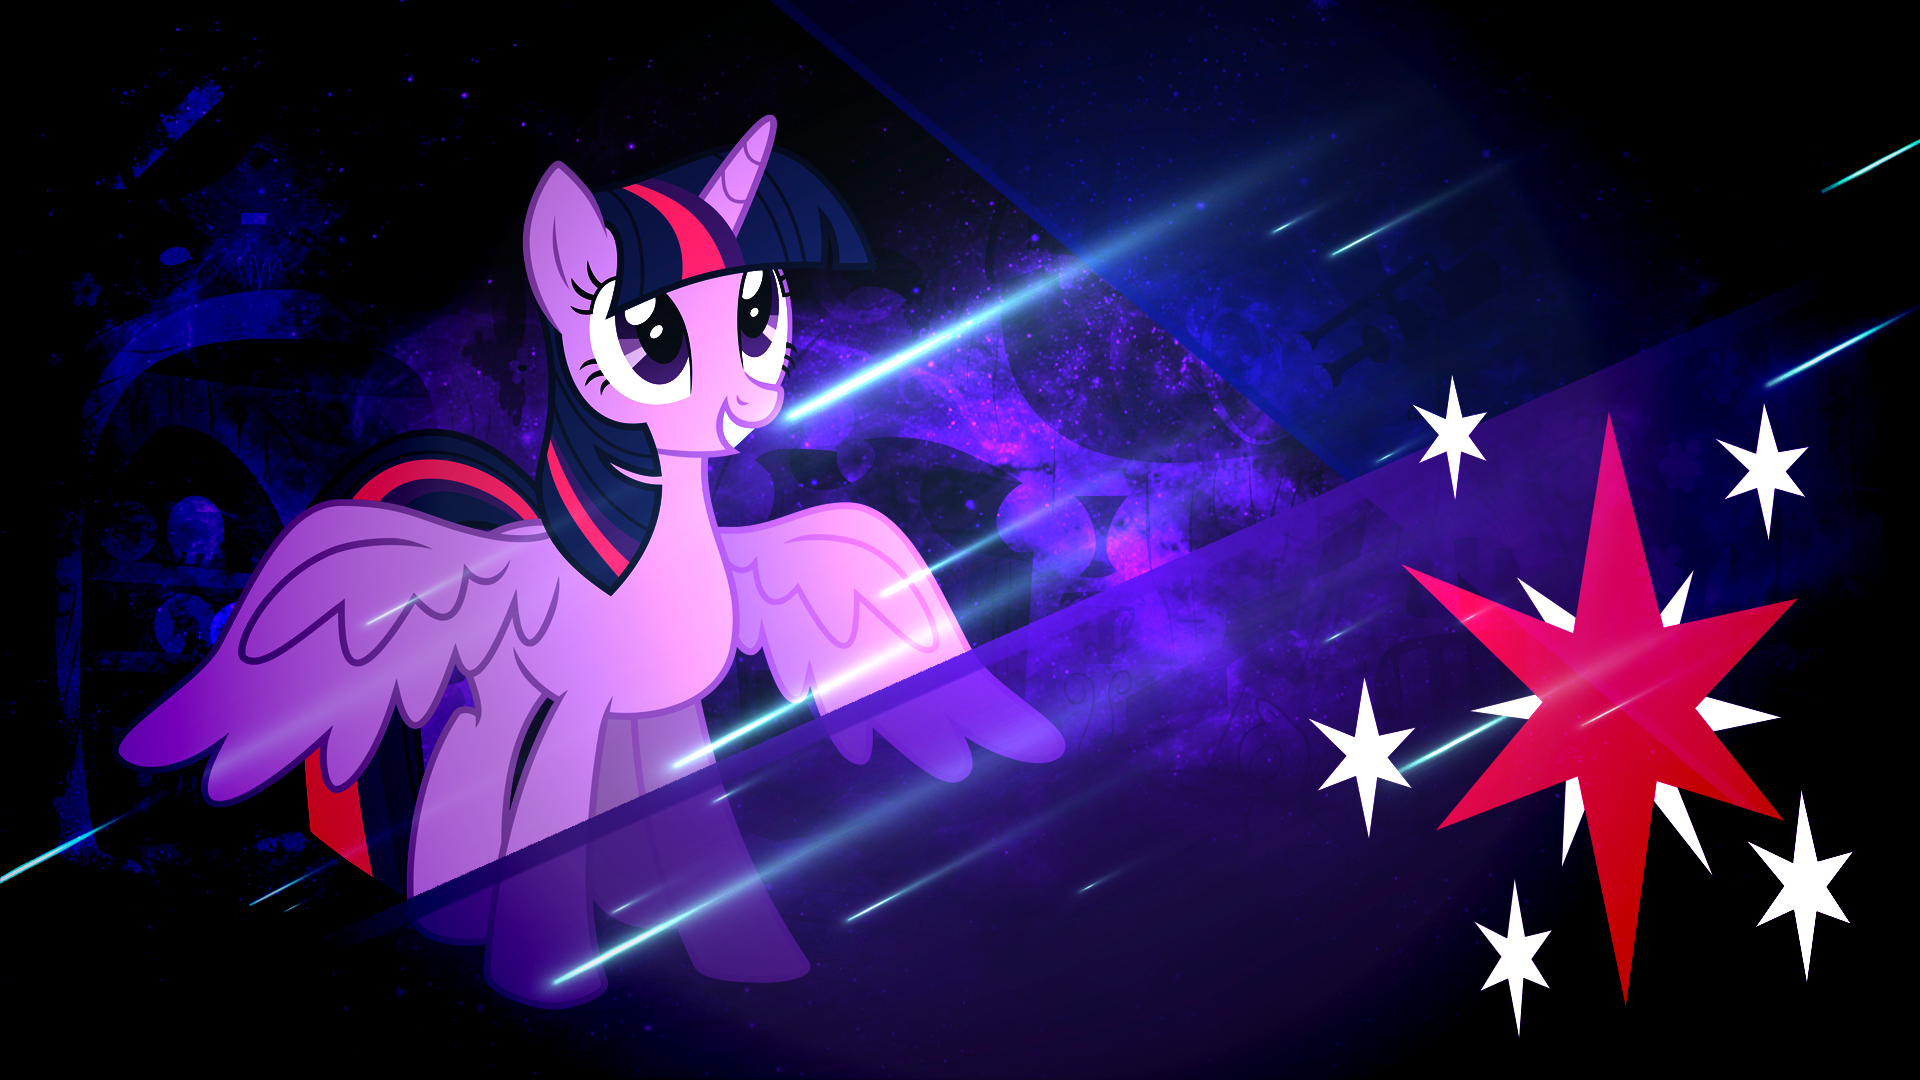 Starlight wallpapers   My Little Pony Friendship is Magic Wallpaper 1920x1080